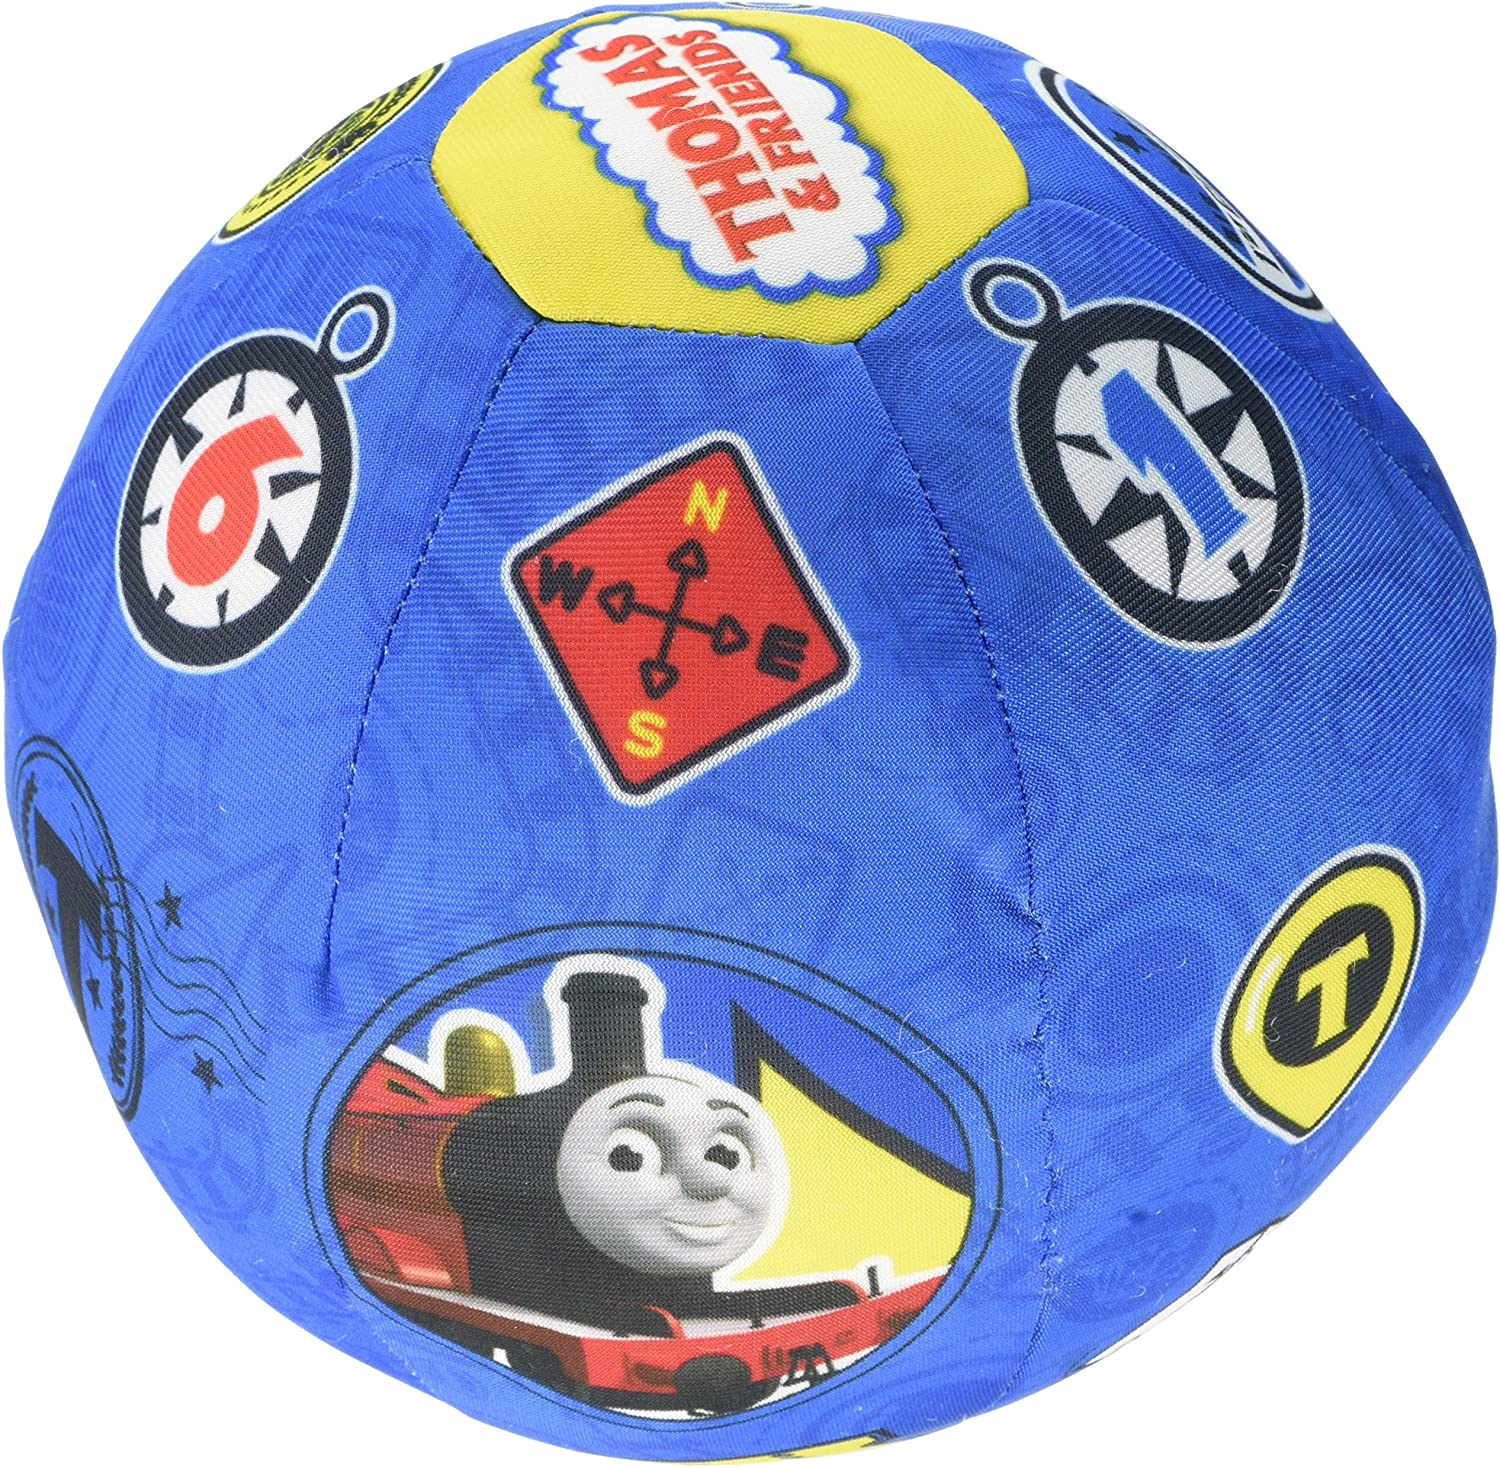 Thomas the Tank Engine and Friends Fun Sounds Motion Sensor Ball